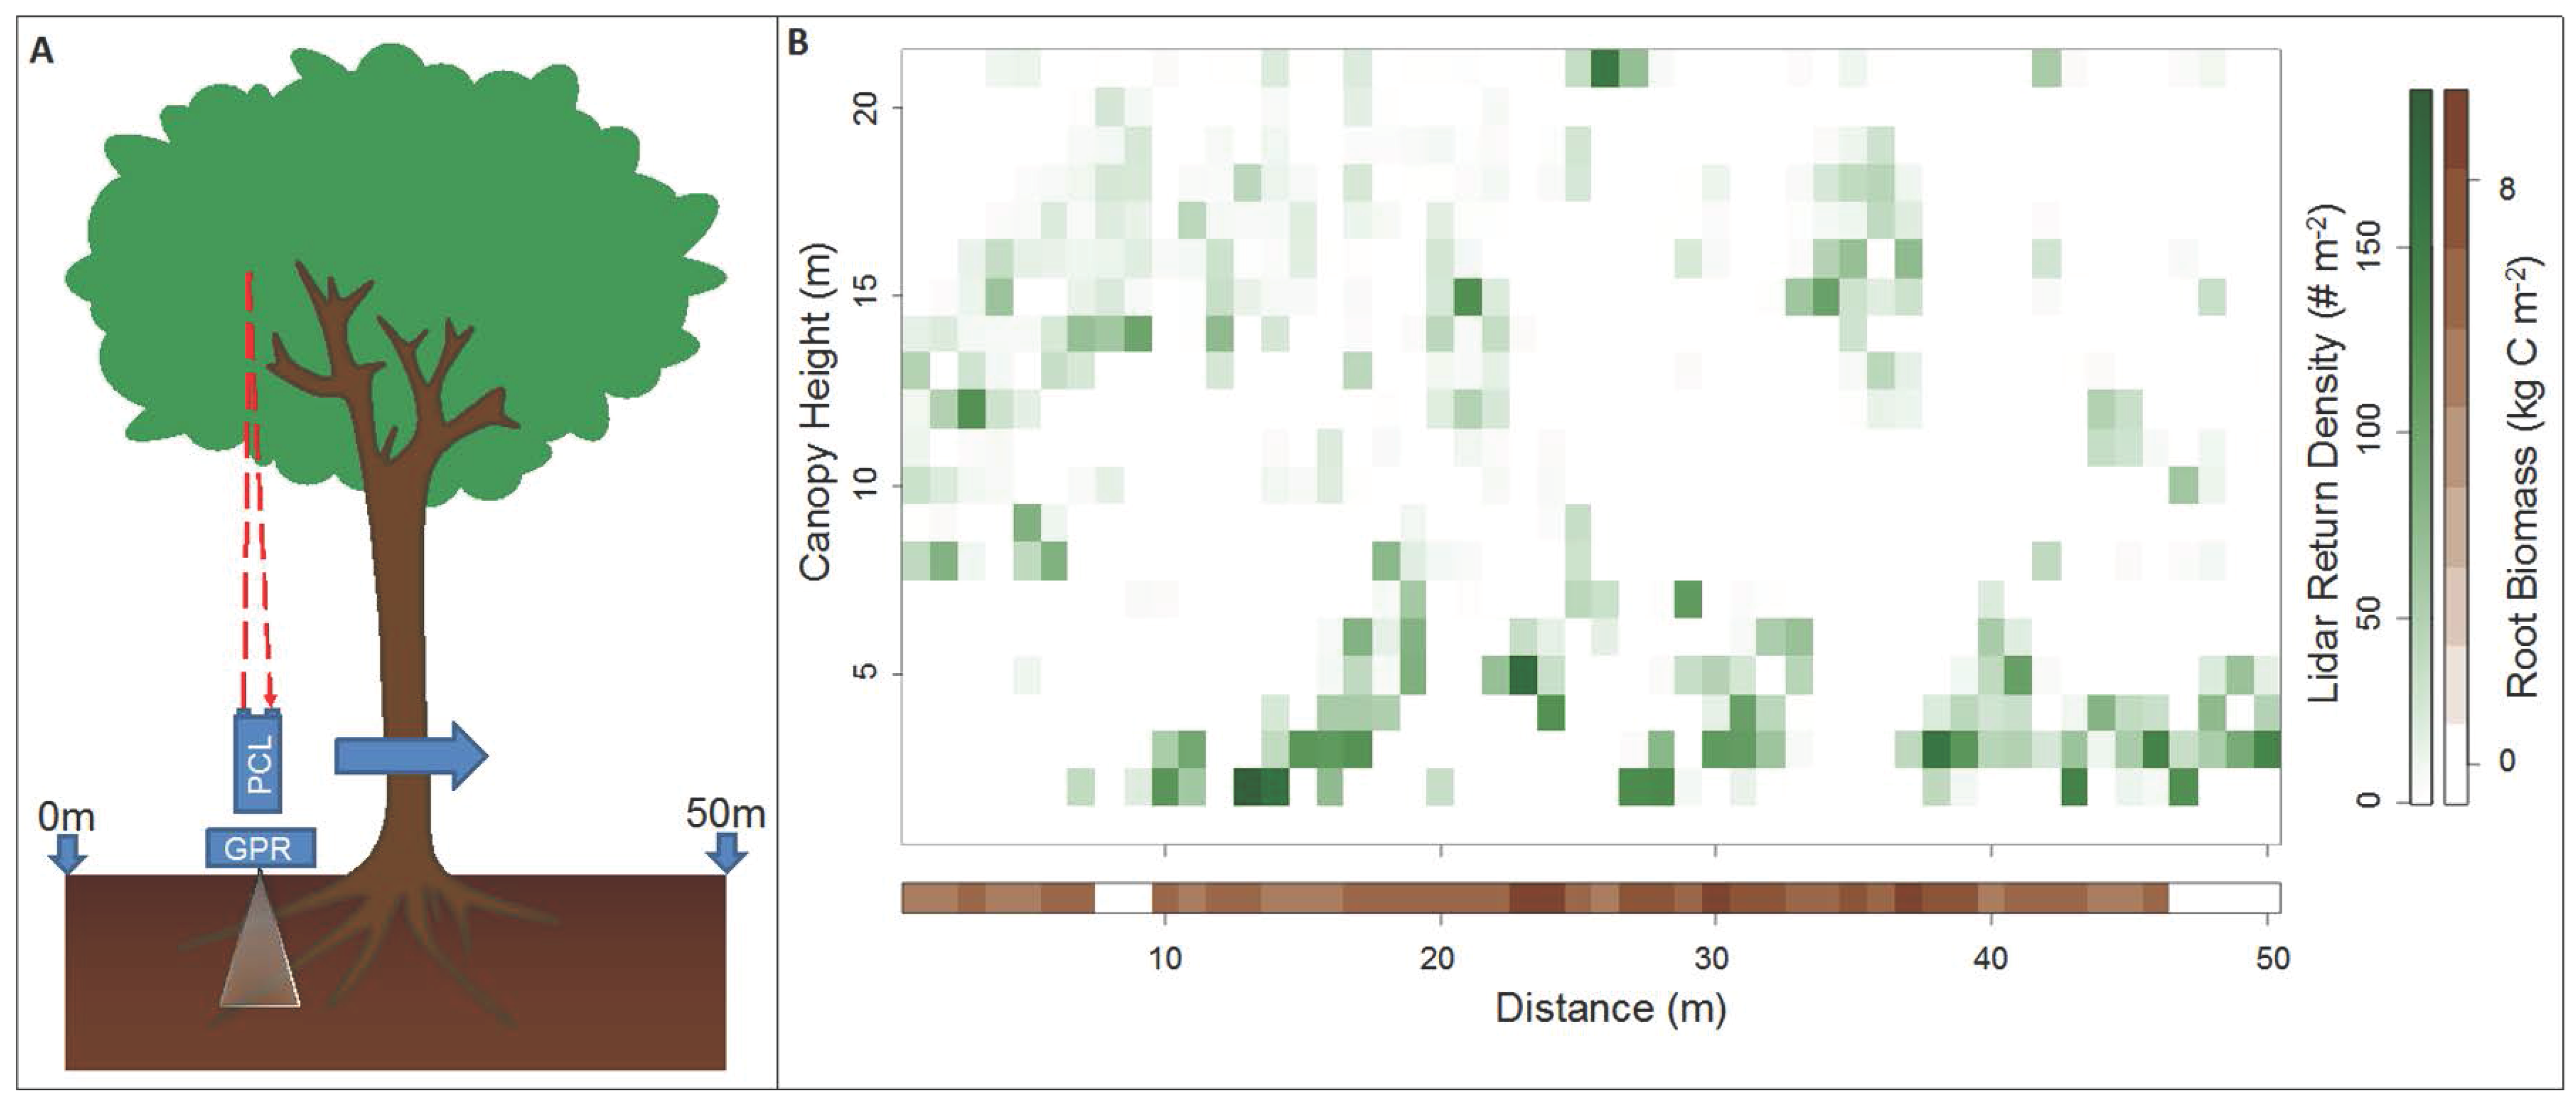 A Comparison Of Ground Penetrating Radar (GPR) and EM Locators for Utility Mapping